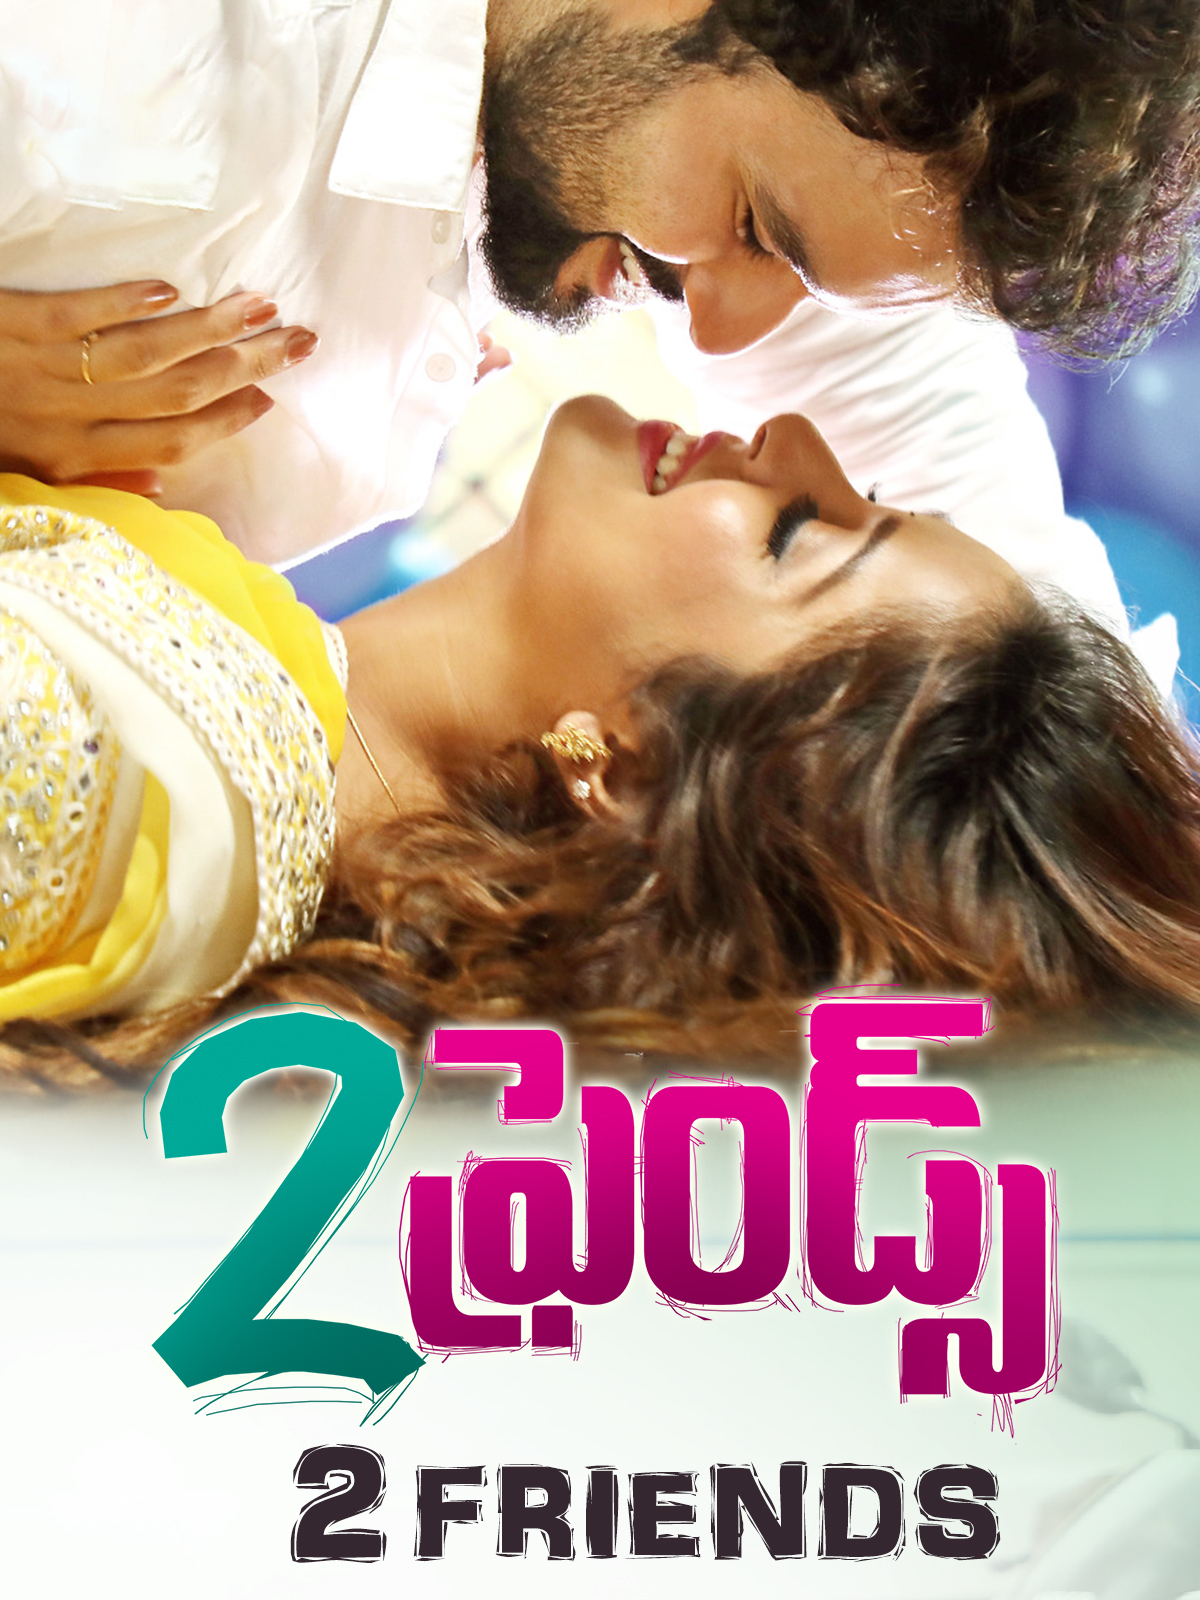 2 Friends (2021) Hindi Dubbed 720p HDRip x264 AAC 700MB Download